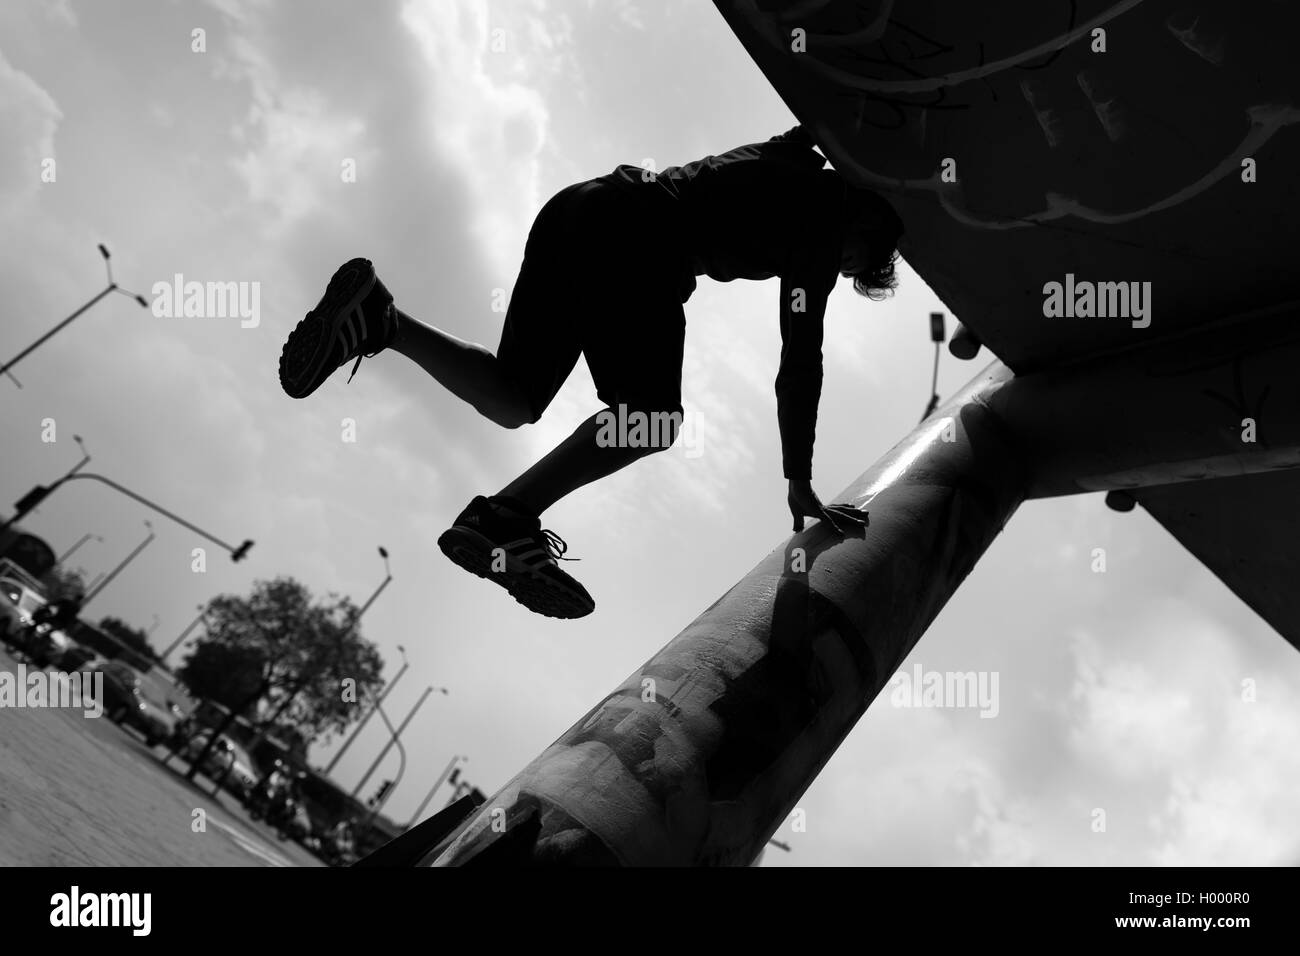 Steven Mantilla, a freerunner from Tamashikaze team, performs parkour moves on the footbridge column in Bogotá, - Stock Image